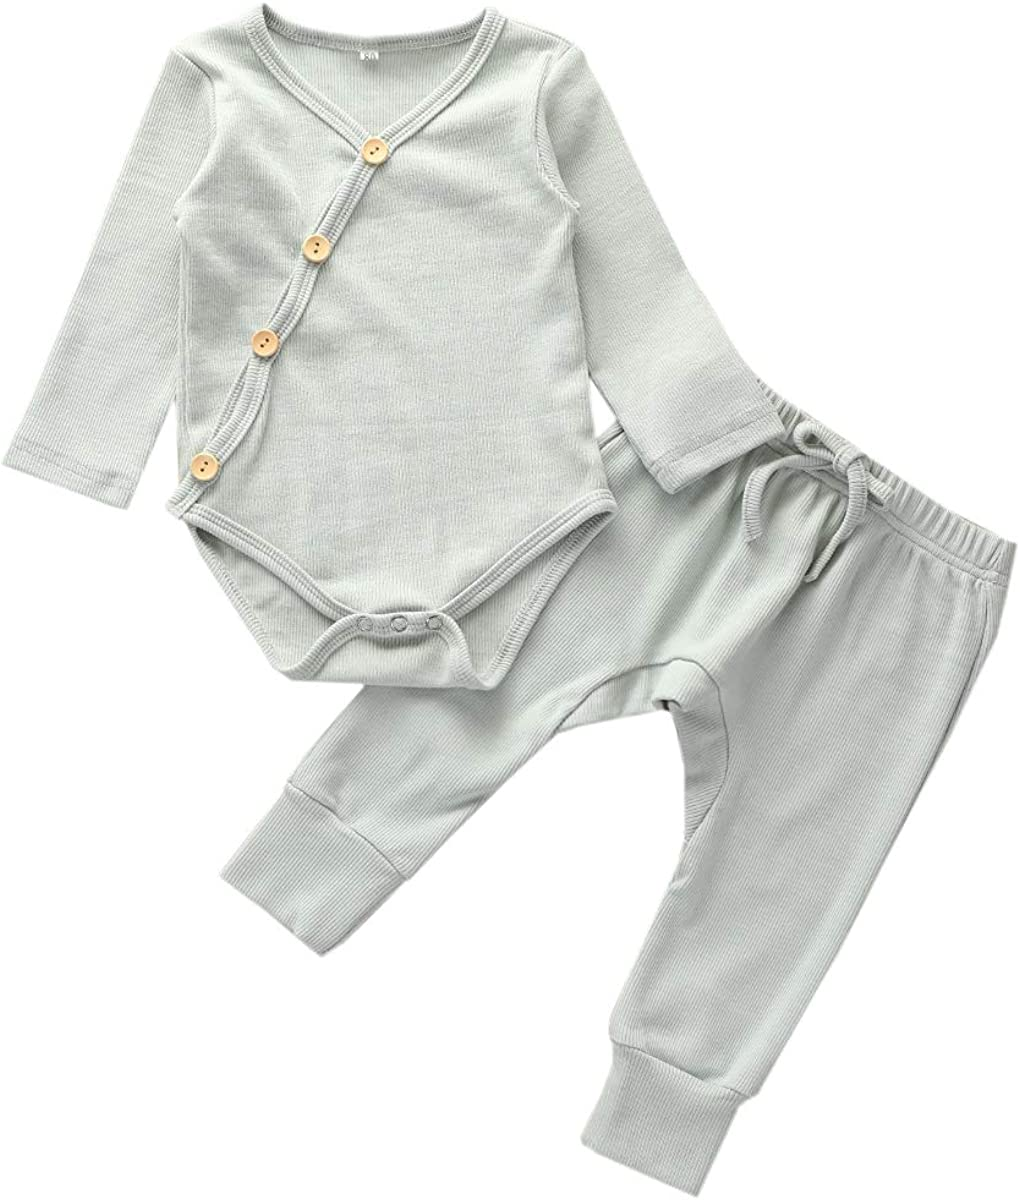 Newborn Baby Girl Boy Organic Cotton Clothes Set Knitted Ribbed Outfit 2Pcs Kimono Outfits